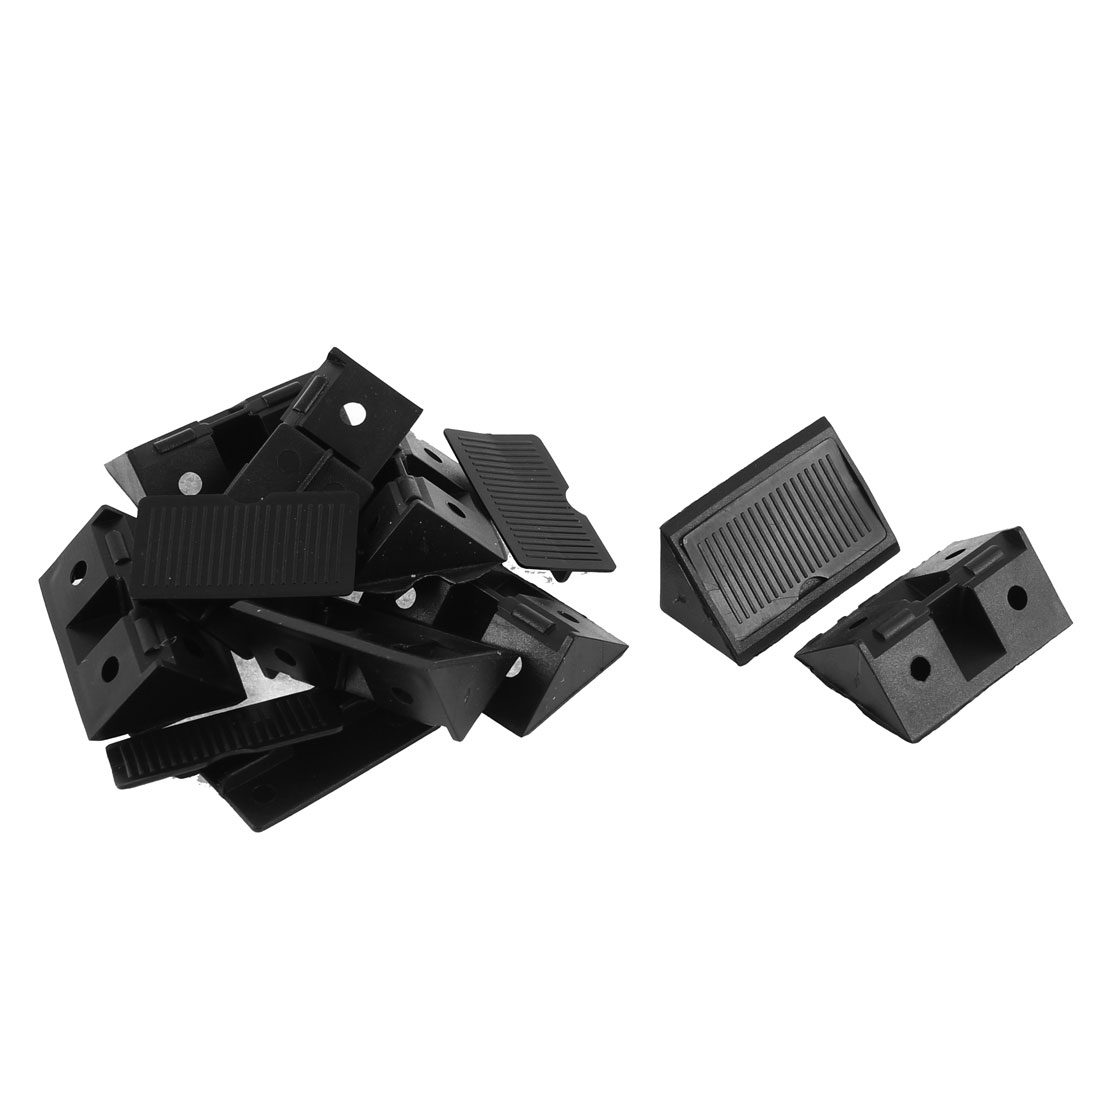 Furniture Shelf Cabinet Plastic 90 Degree Corner Braces Angle Brackets 8pcs